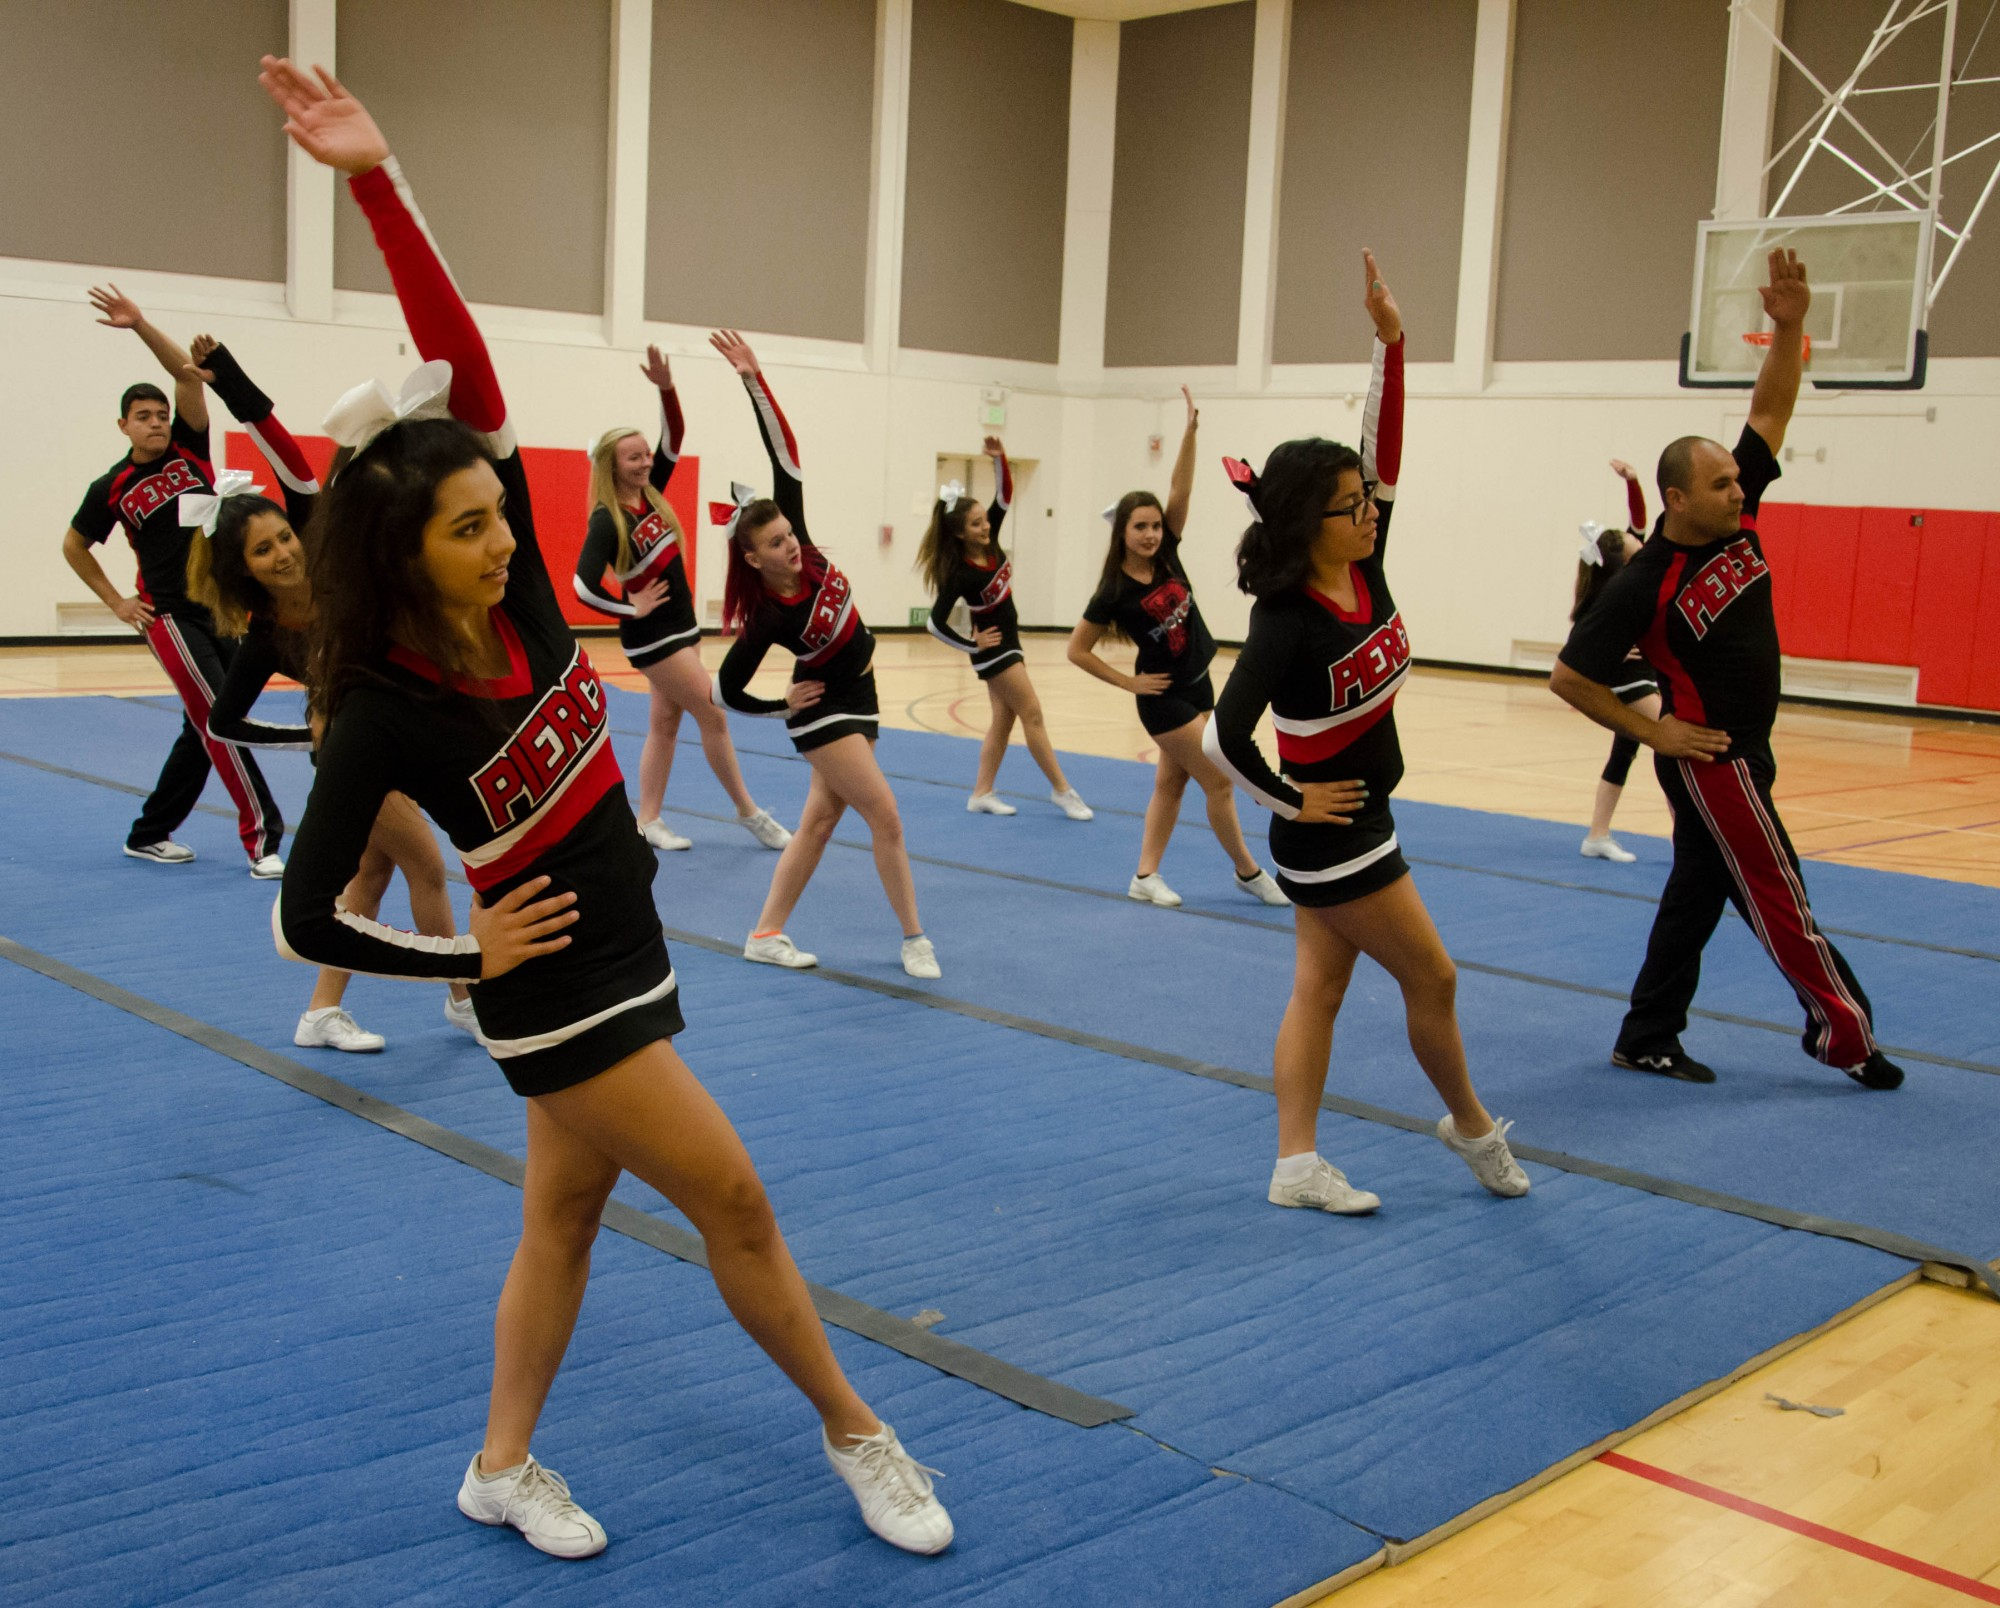 PHOTO ESSAY: Cheer Competition Team train for upcoming tournament